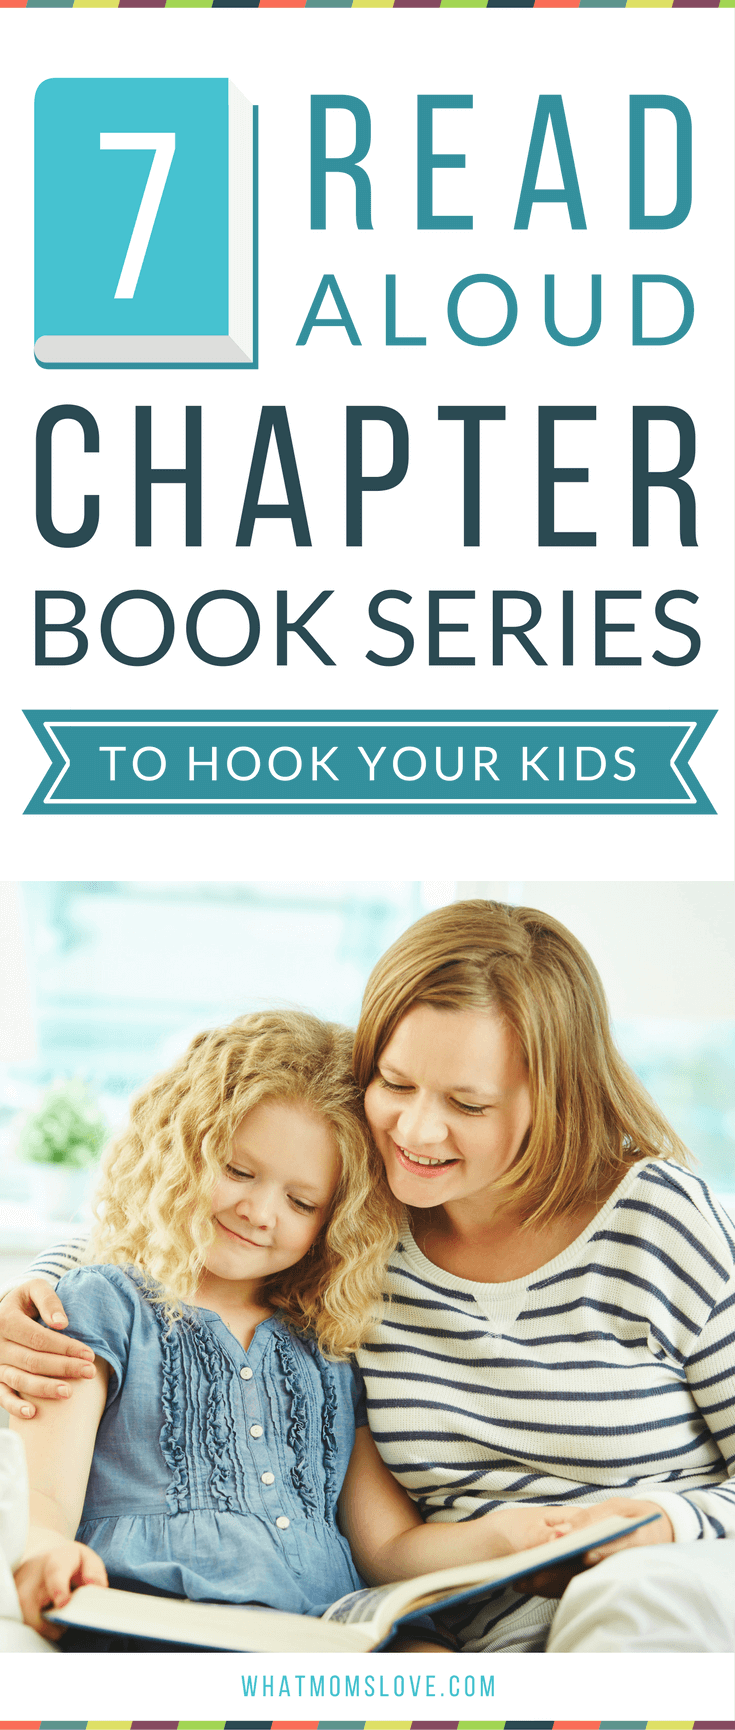 Best Read Aloud Chapter Book Series To Hook Your Kids! These incredible books have lots of pictures and engaging stories - perfect for your preschooler, kindergartner or early reader to listen to.